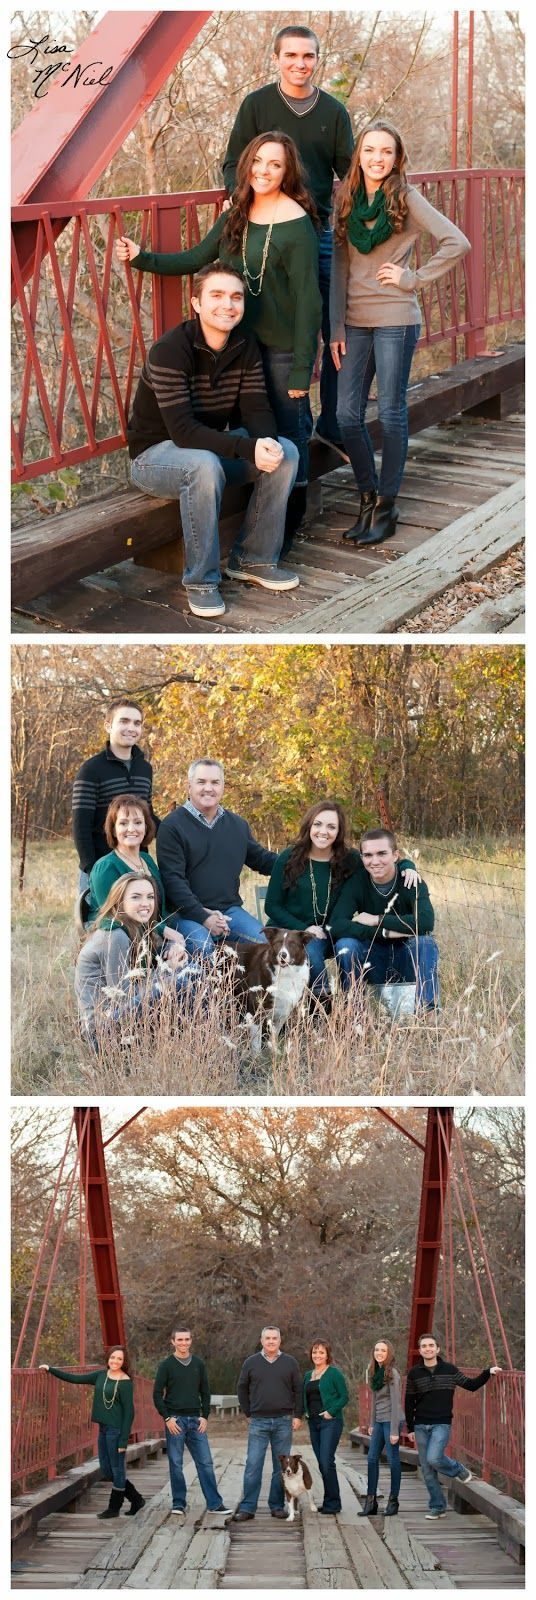 family photography, family pictures, family photos what to wear, how to have fun! Family pics, family pictures, family photography tips #photography